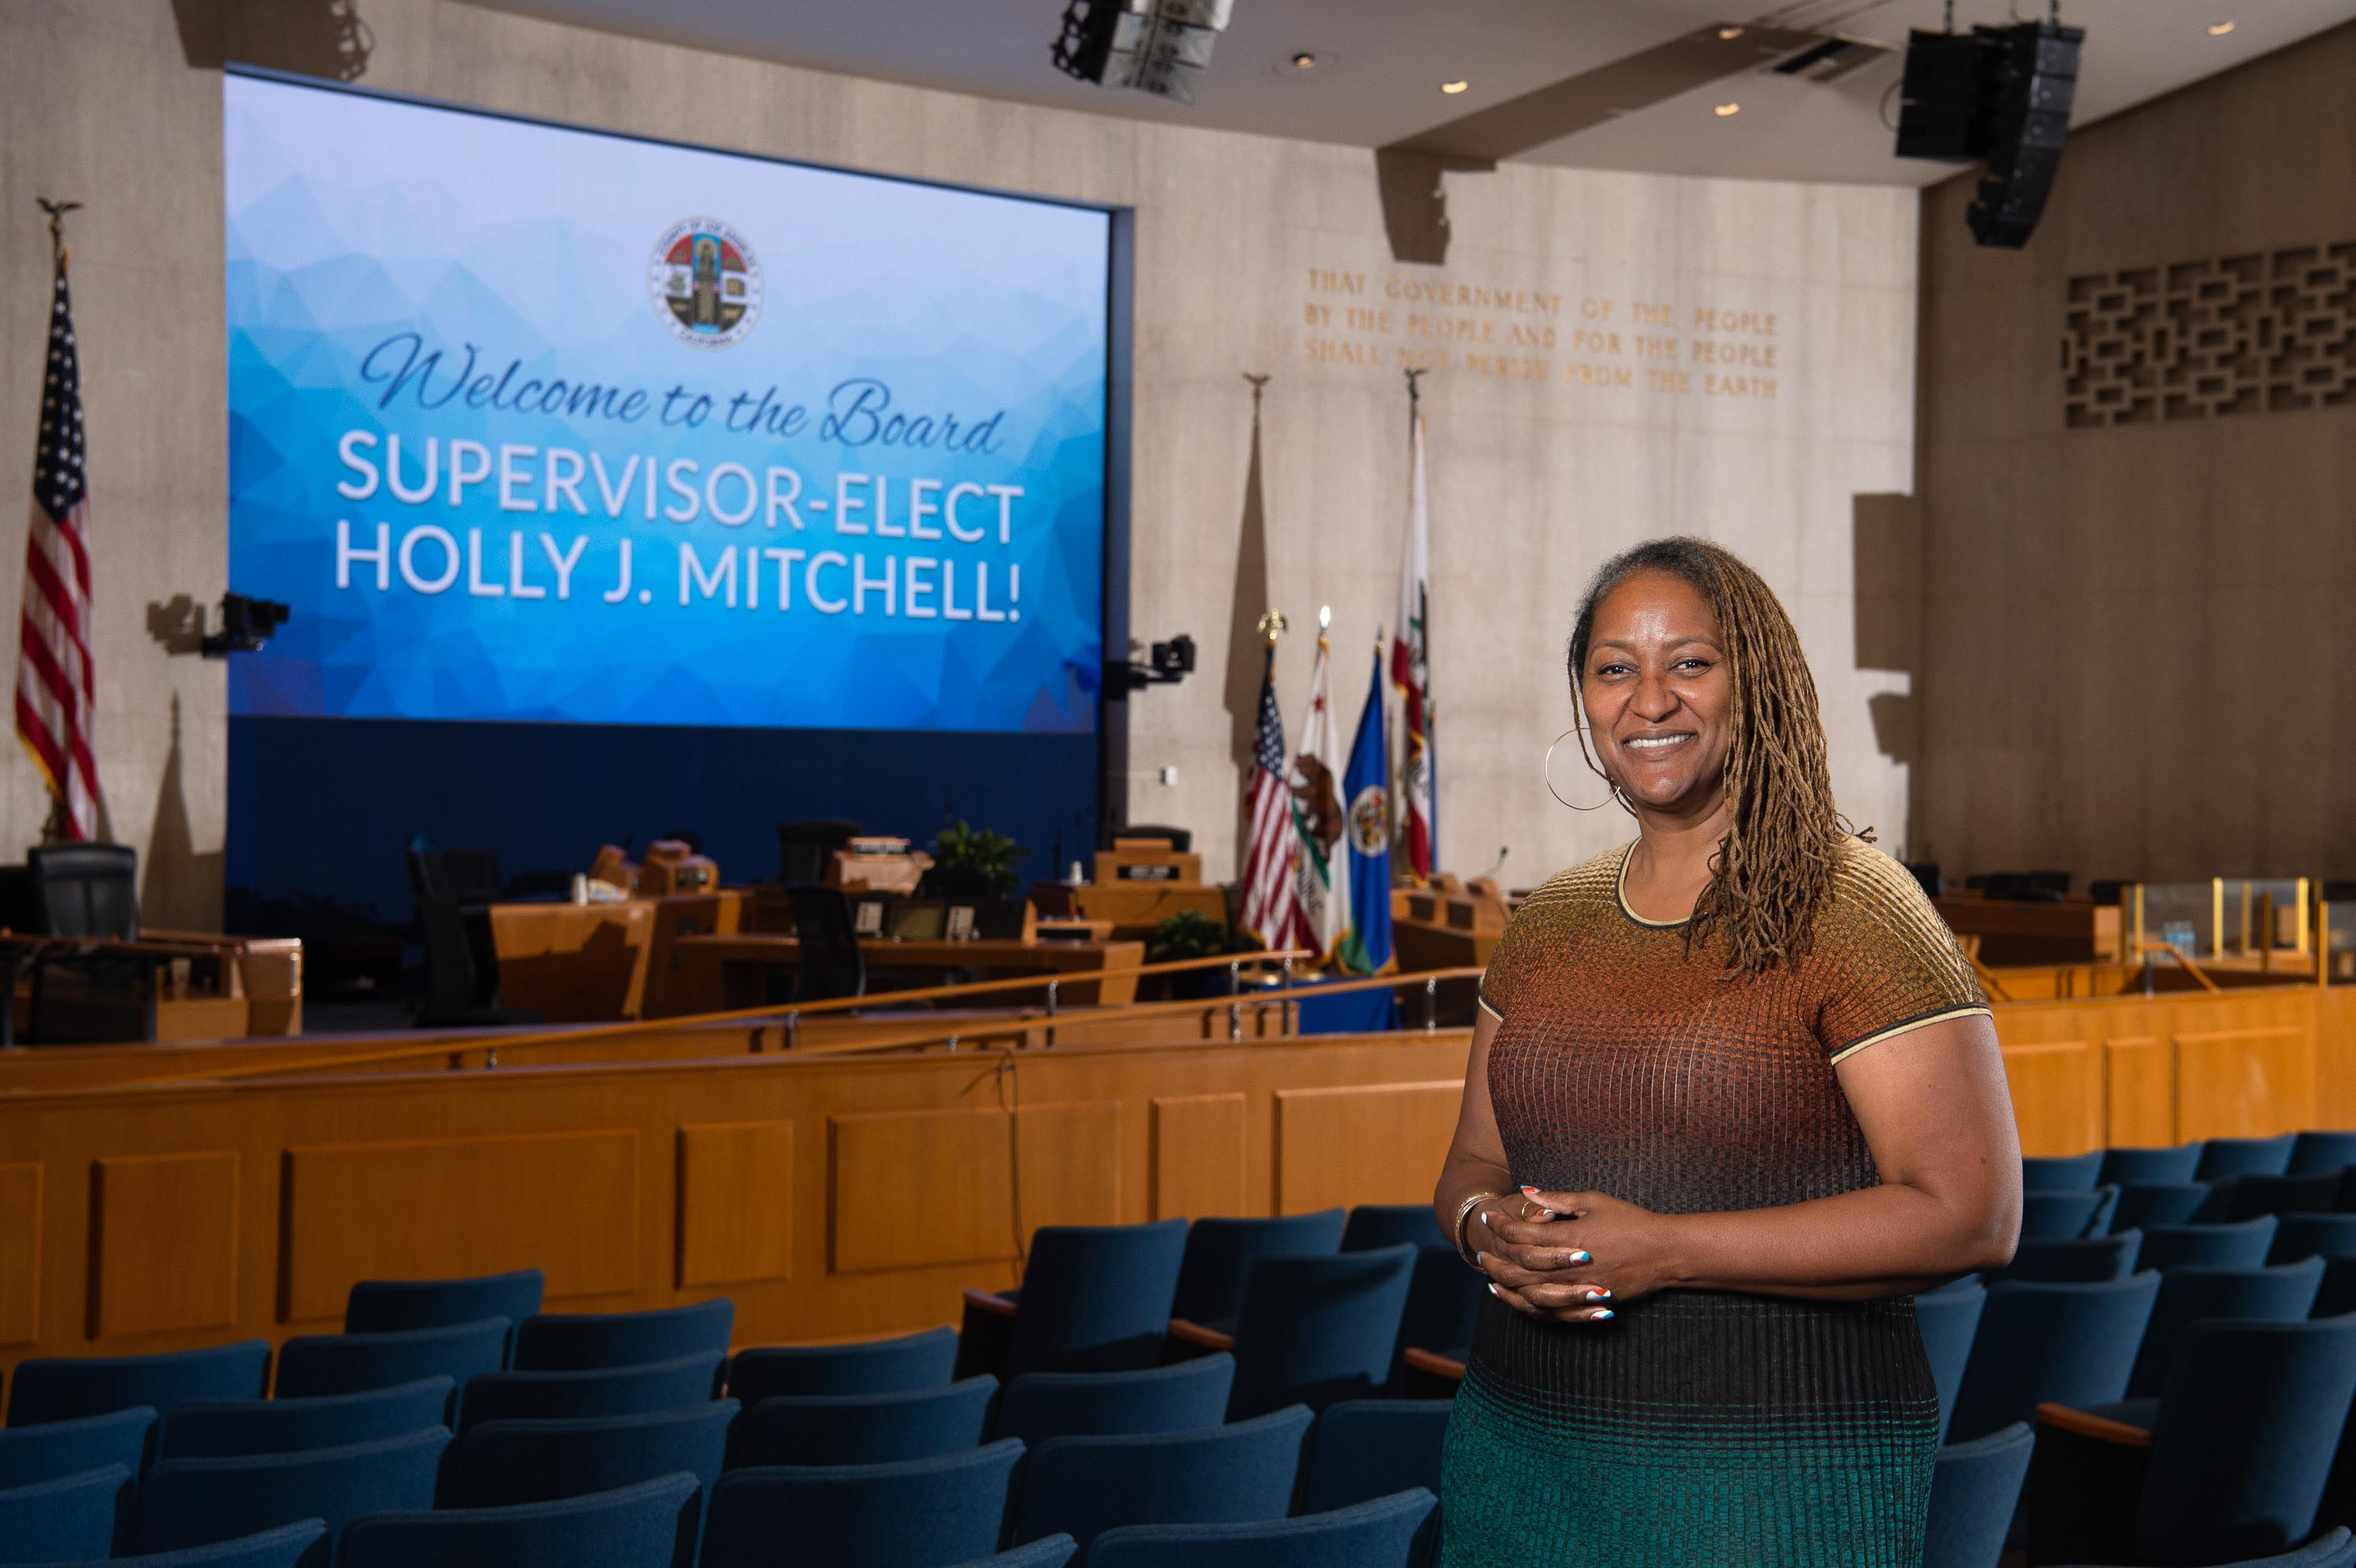 Executive Office<br>  <b>Nov. 16, 2020 – Supervisor-Elect Holly J. Mitchell's visit to the Kenneth Hahn Hall of Administration.</b><br>  <i>Photo by Bryan Chan / Board of Supervisors</i>